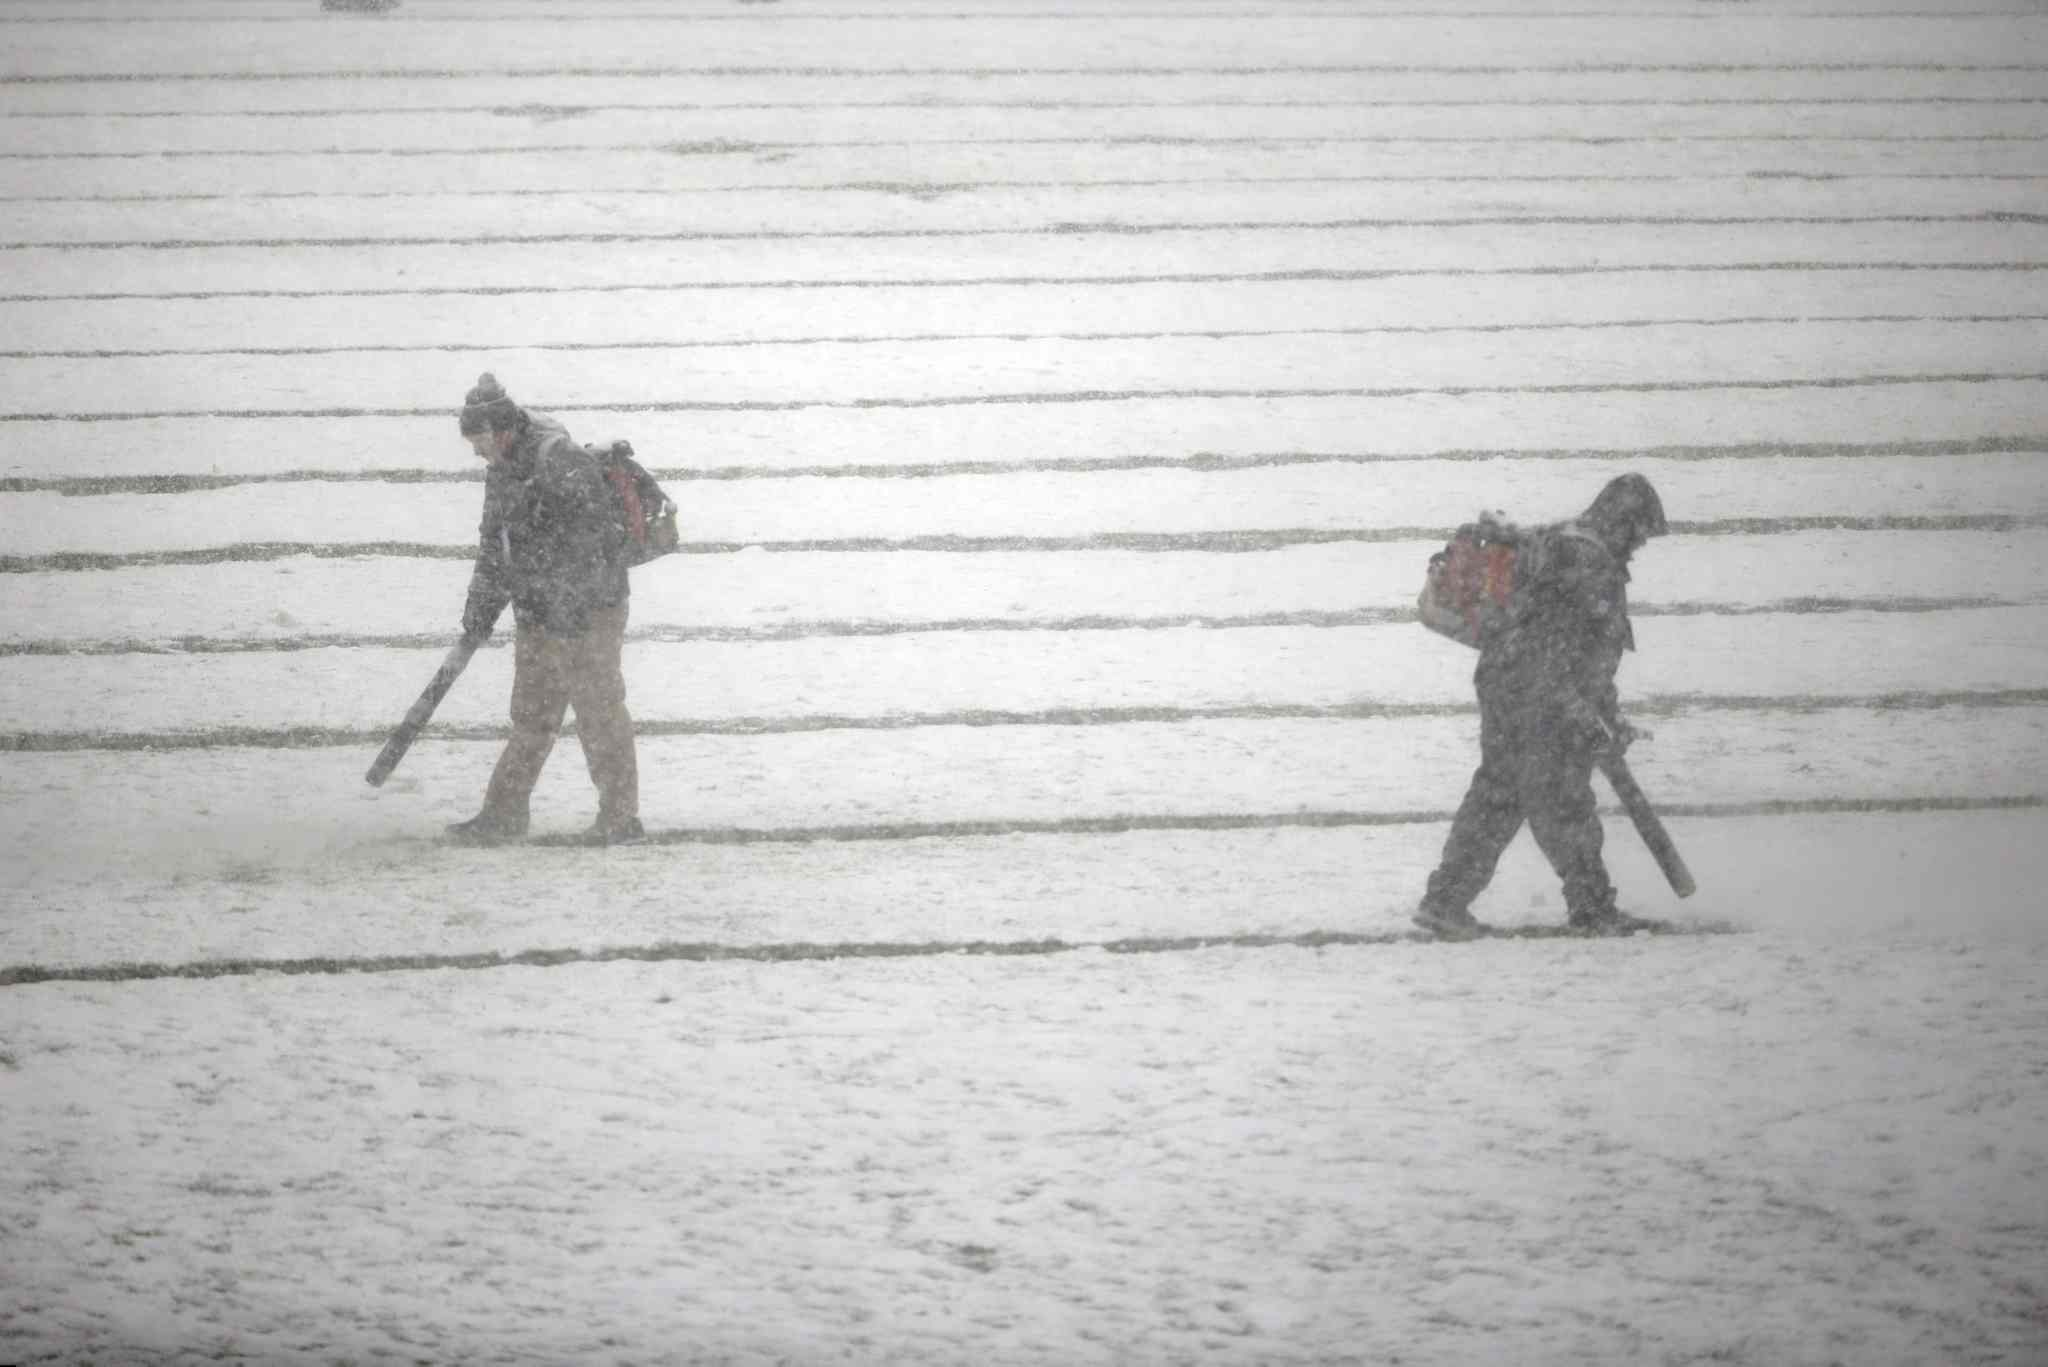 Philadelphia Eagles personnel clear snow from the field before Sunday's game between the Philadelphia Eagles and the Detroit Lions.